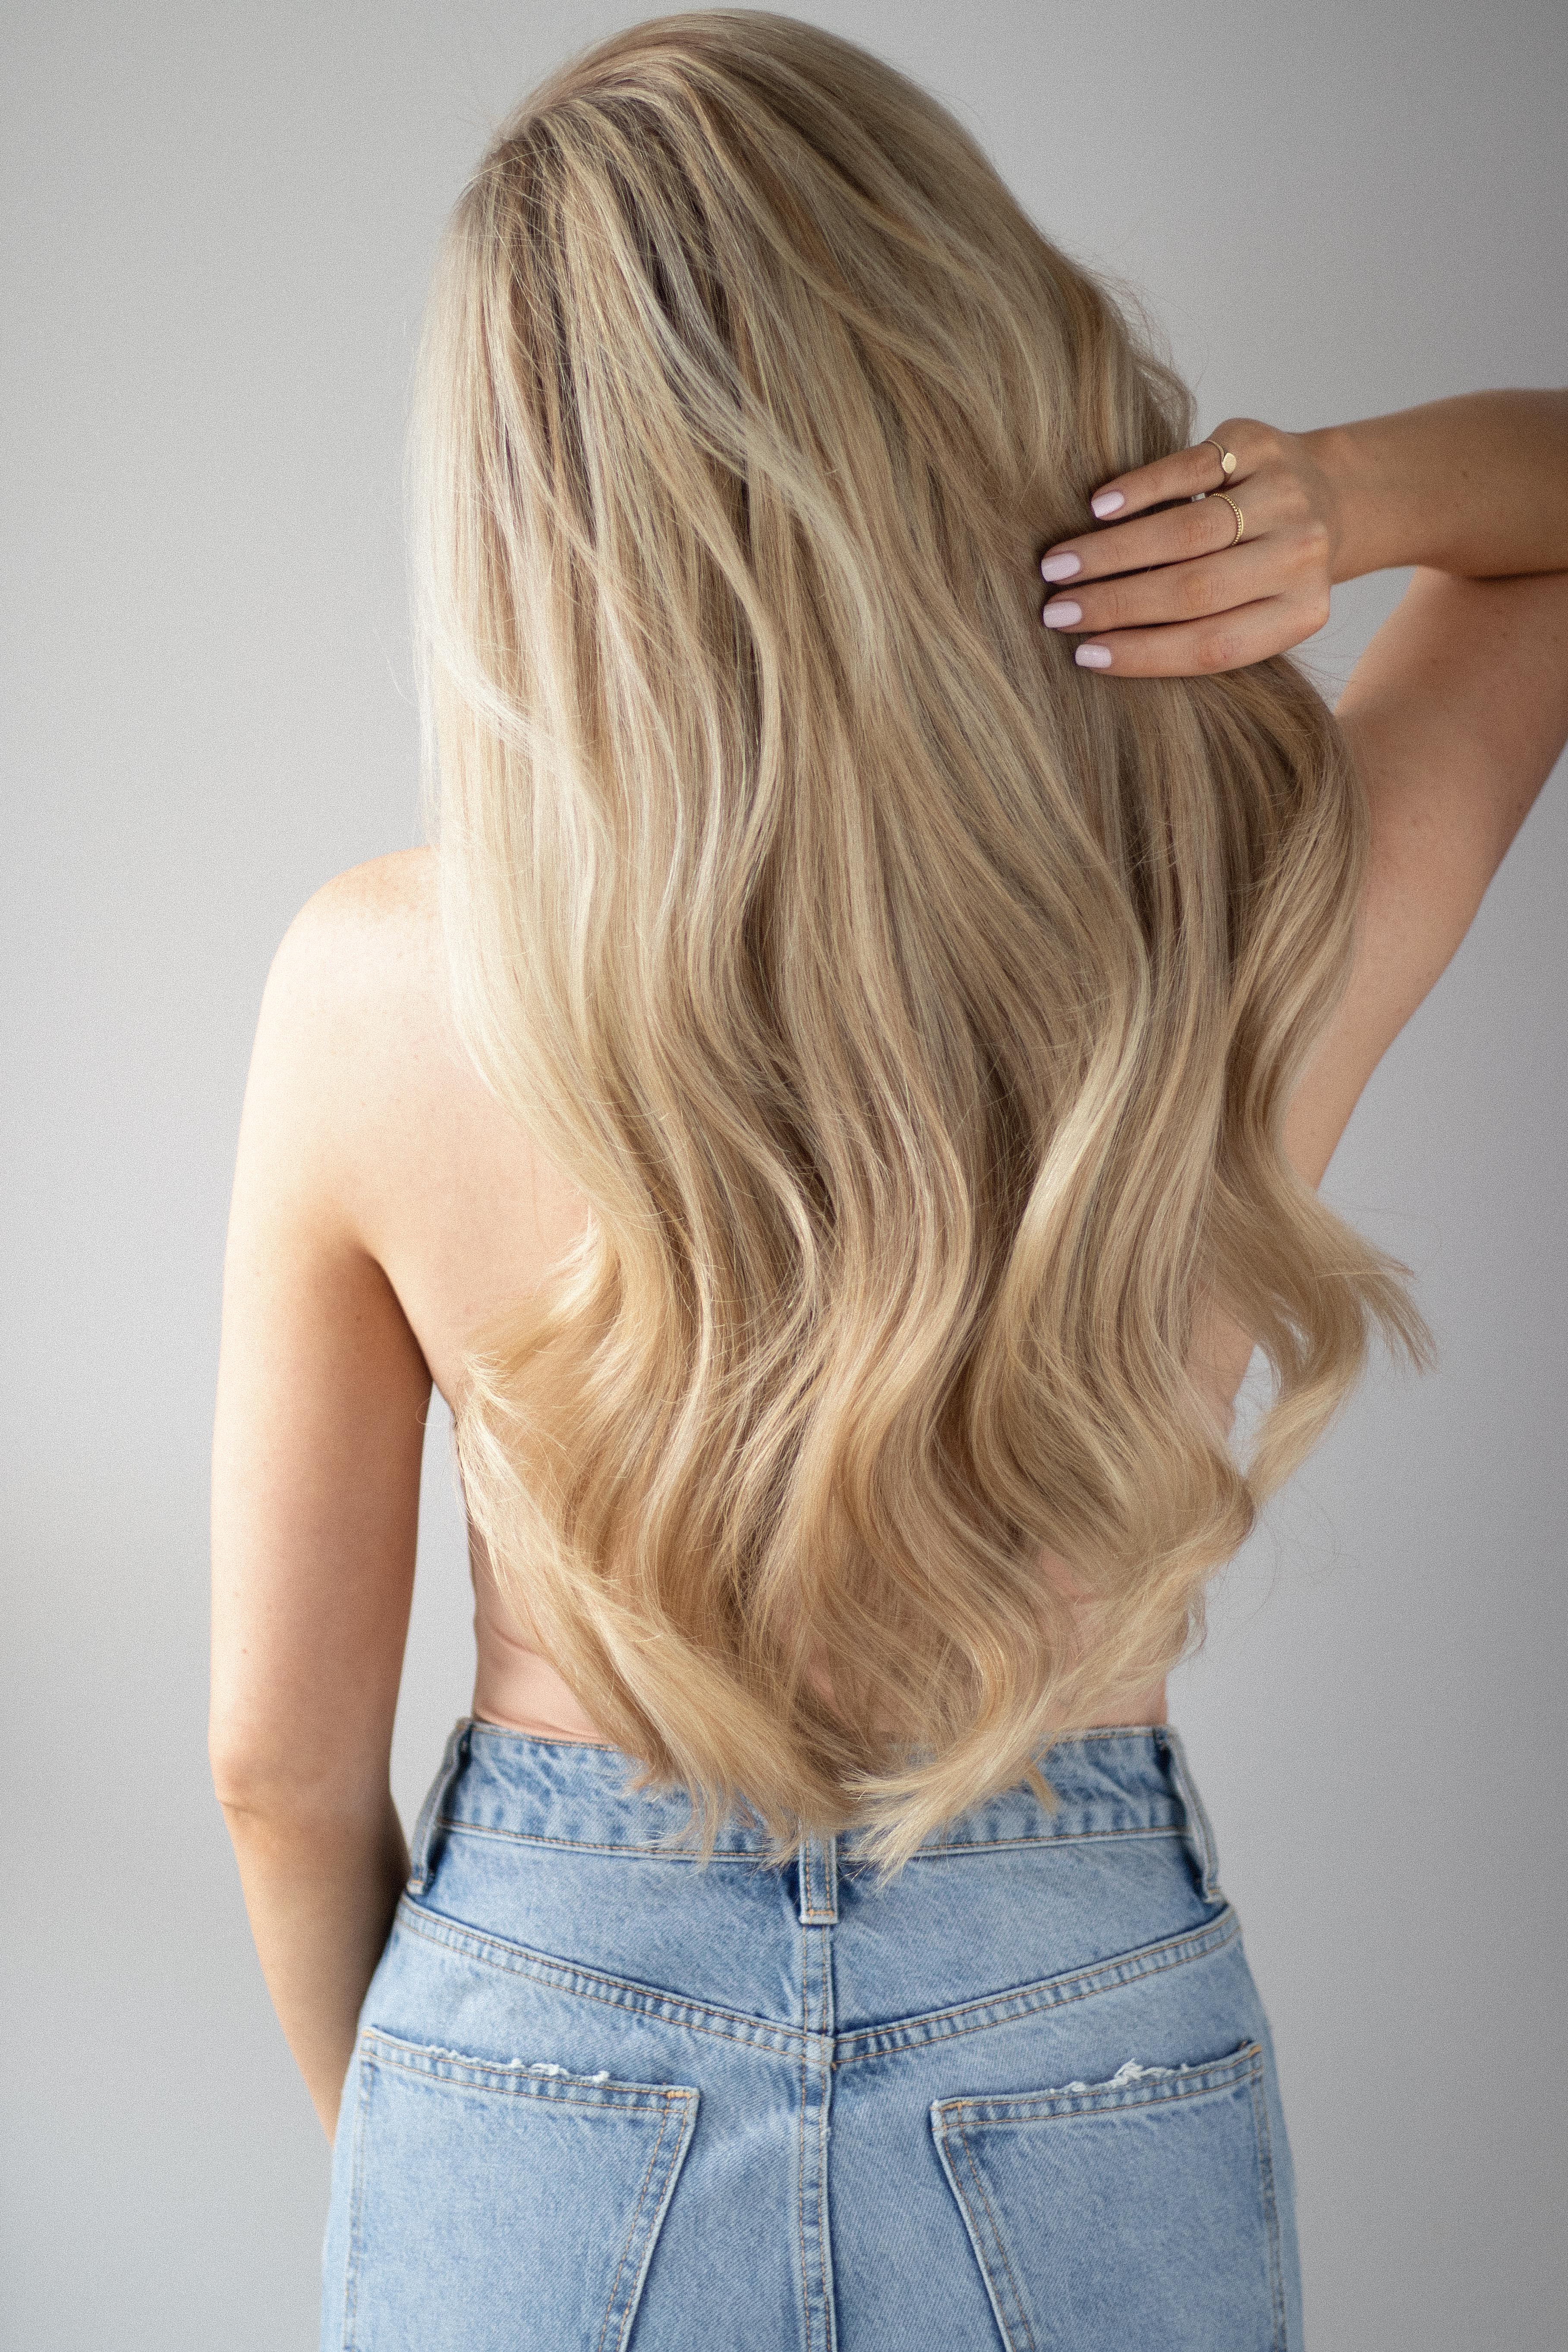 10 TIPS TO GROW LONG AND HEALTHY HAIR | www.alexgaboury.com